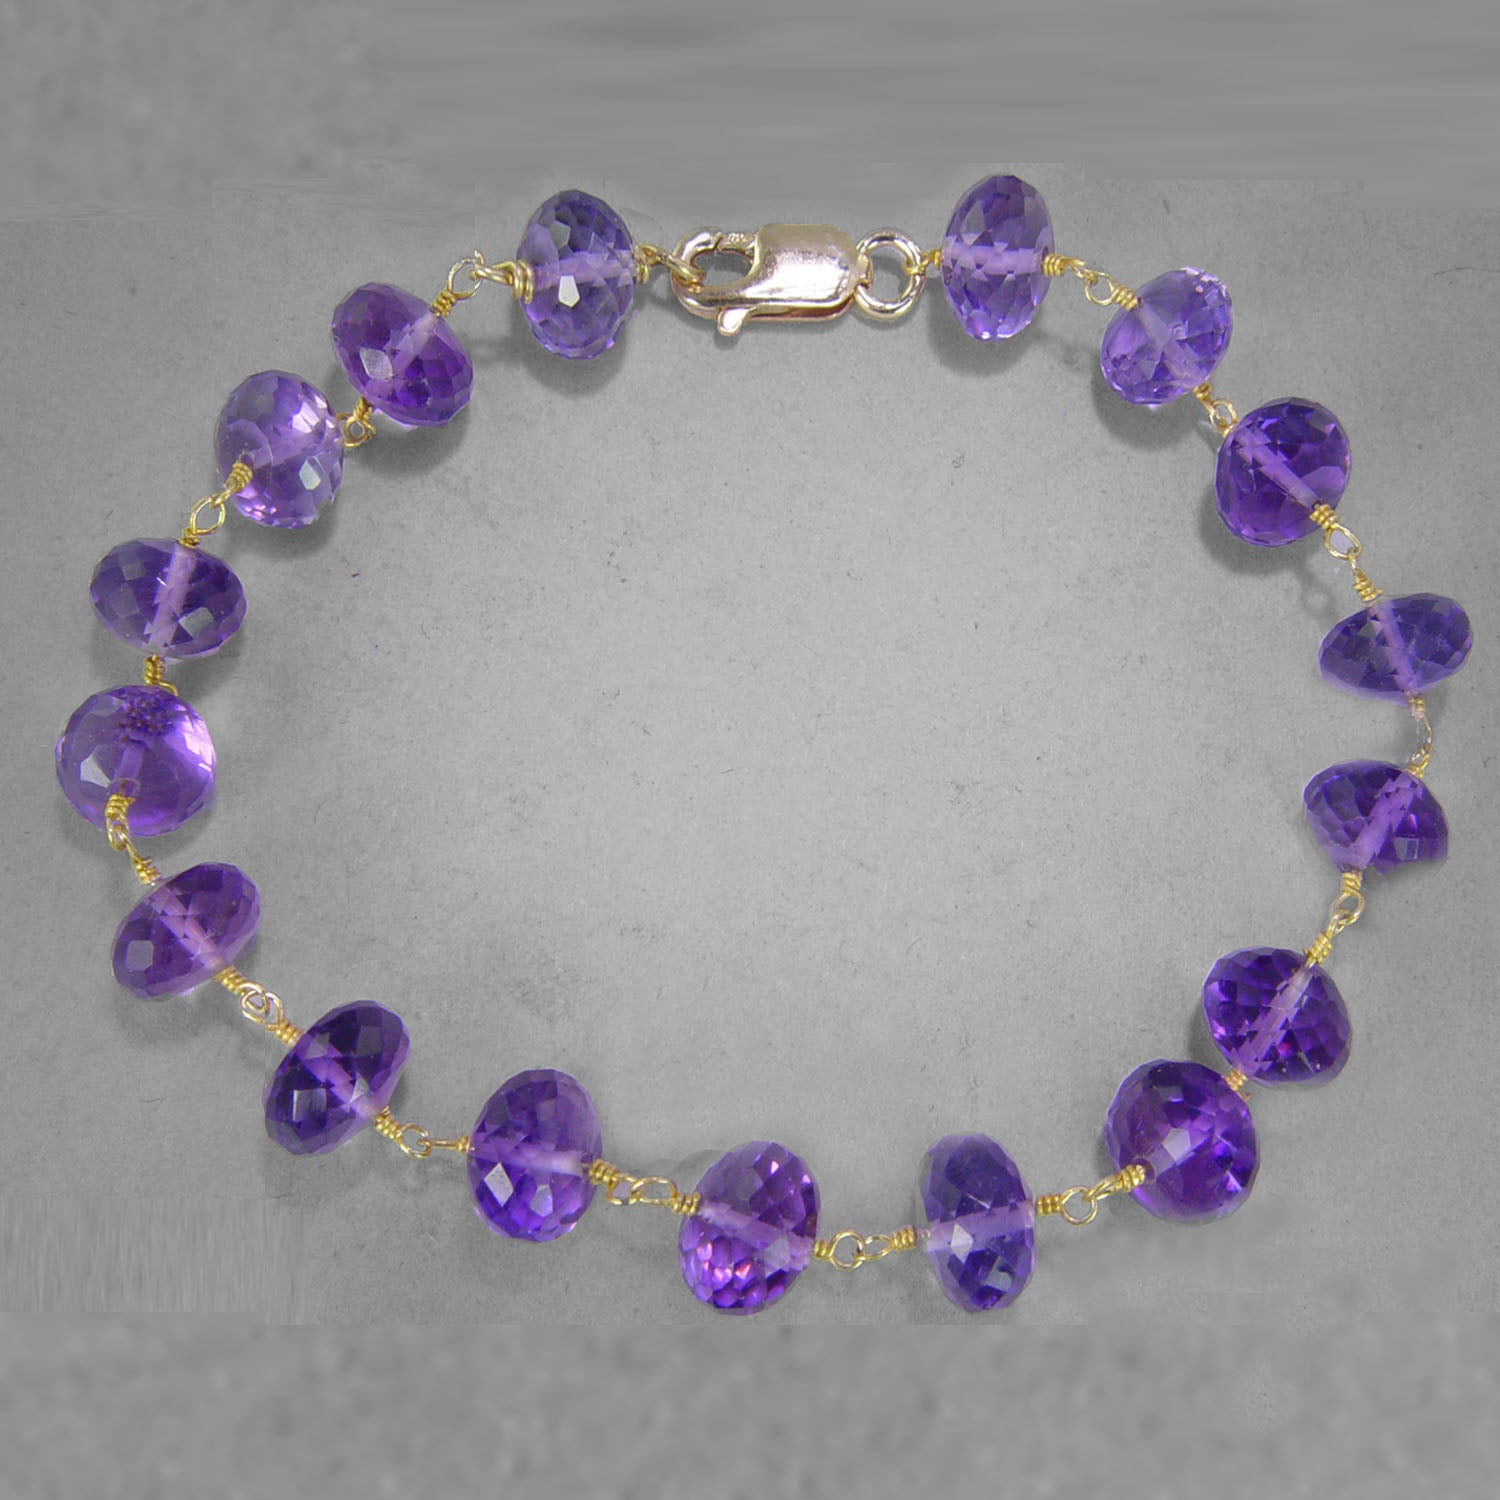 Amethyst Faceted Rondelle Gold Filled Wire Bracelet